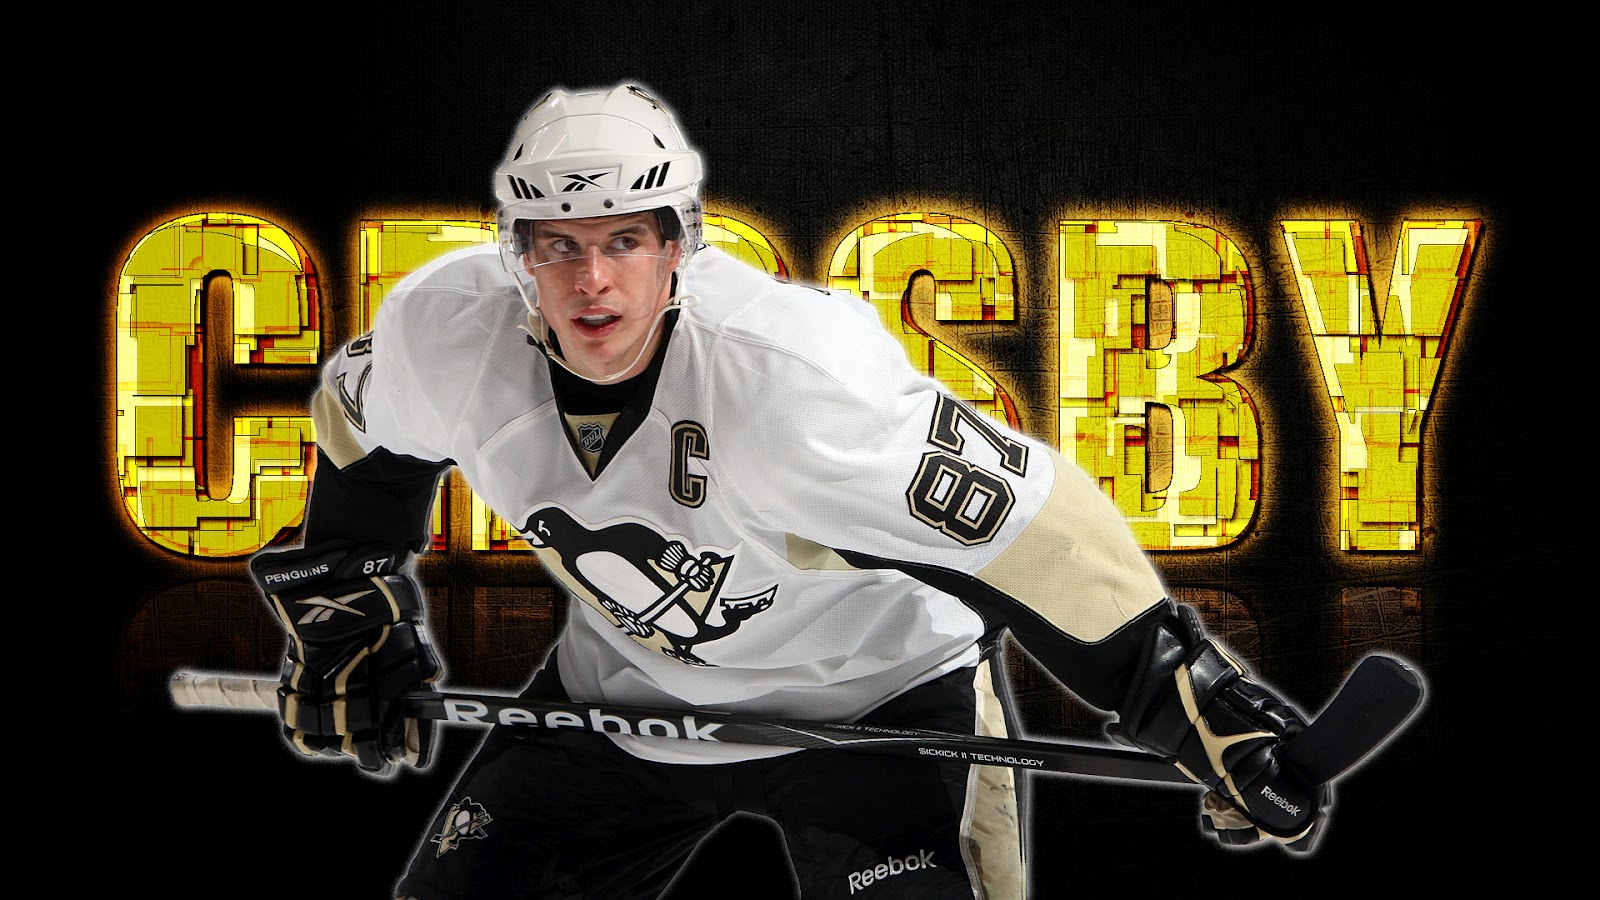 sidney crosby wallpaper nhl - photo #19